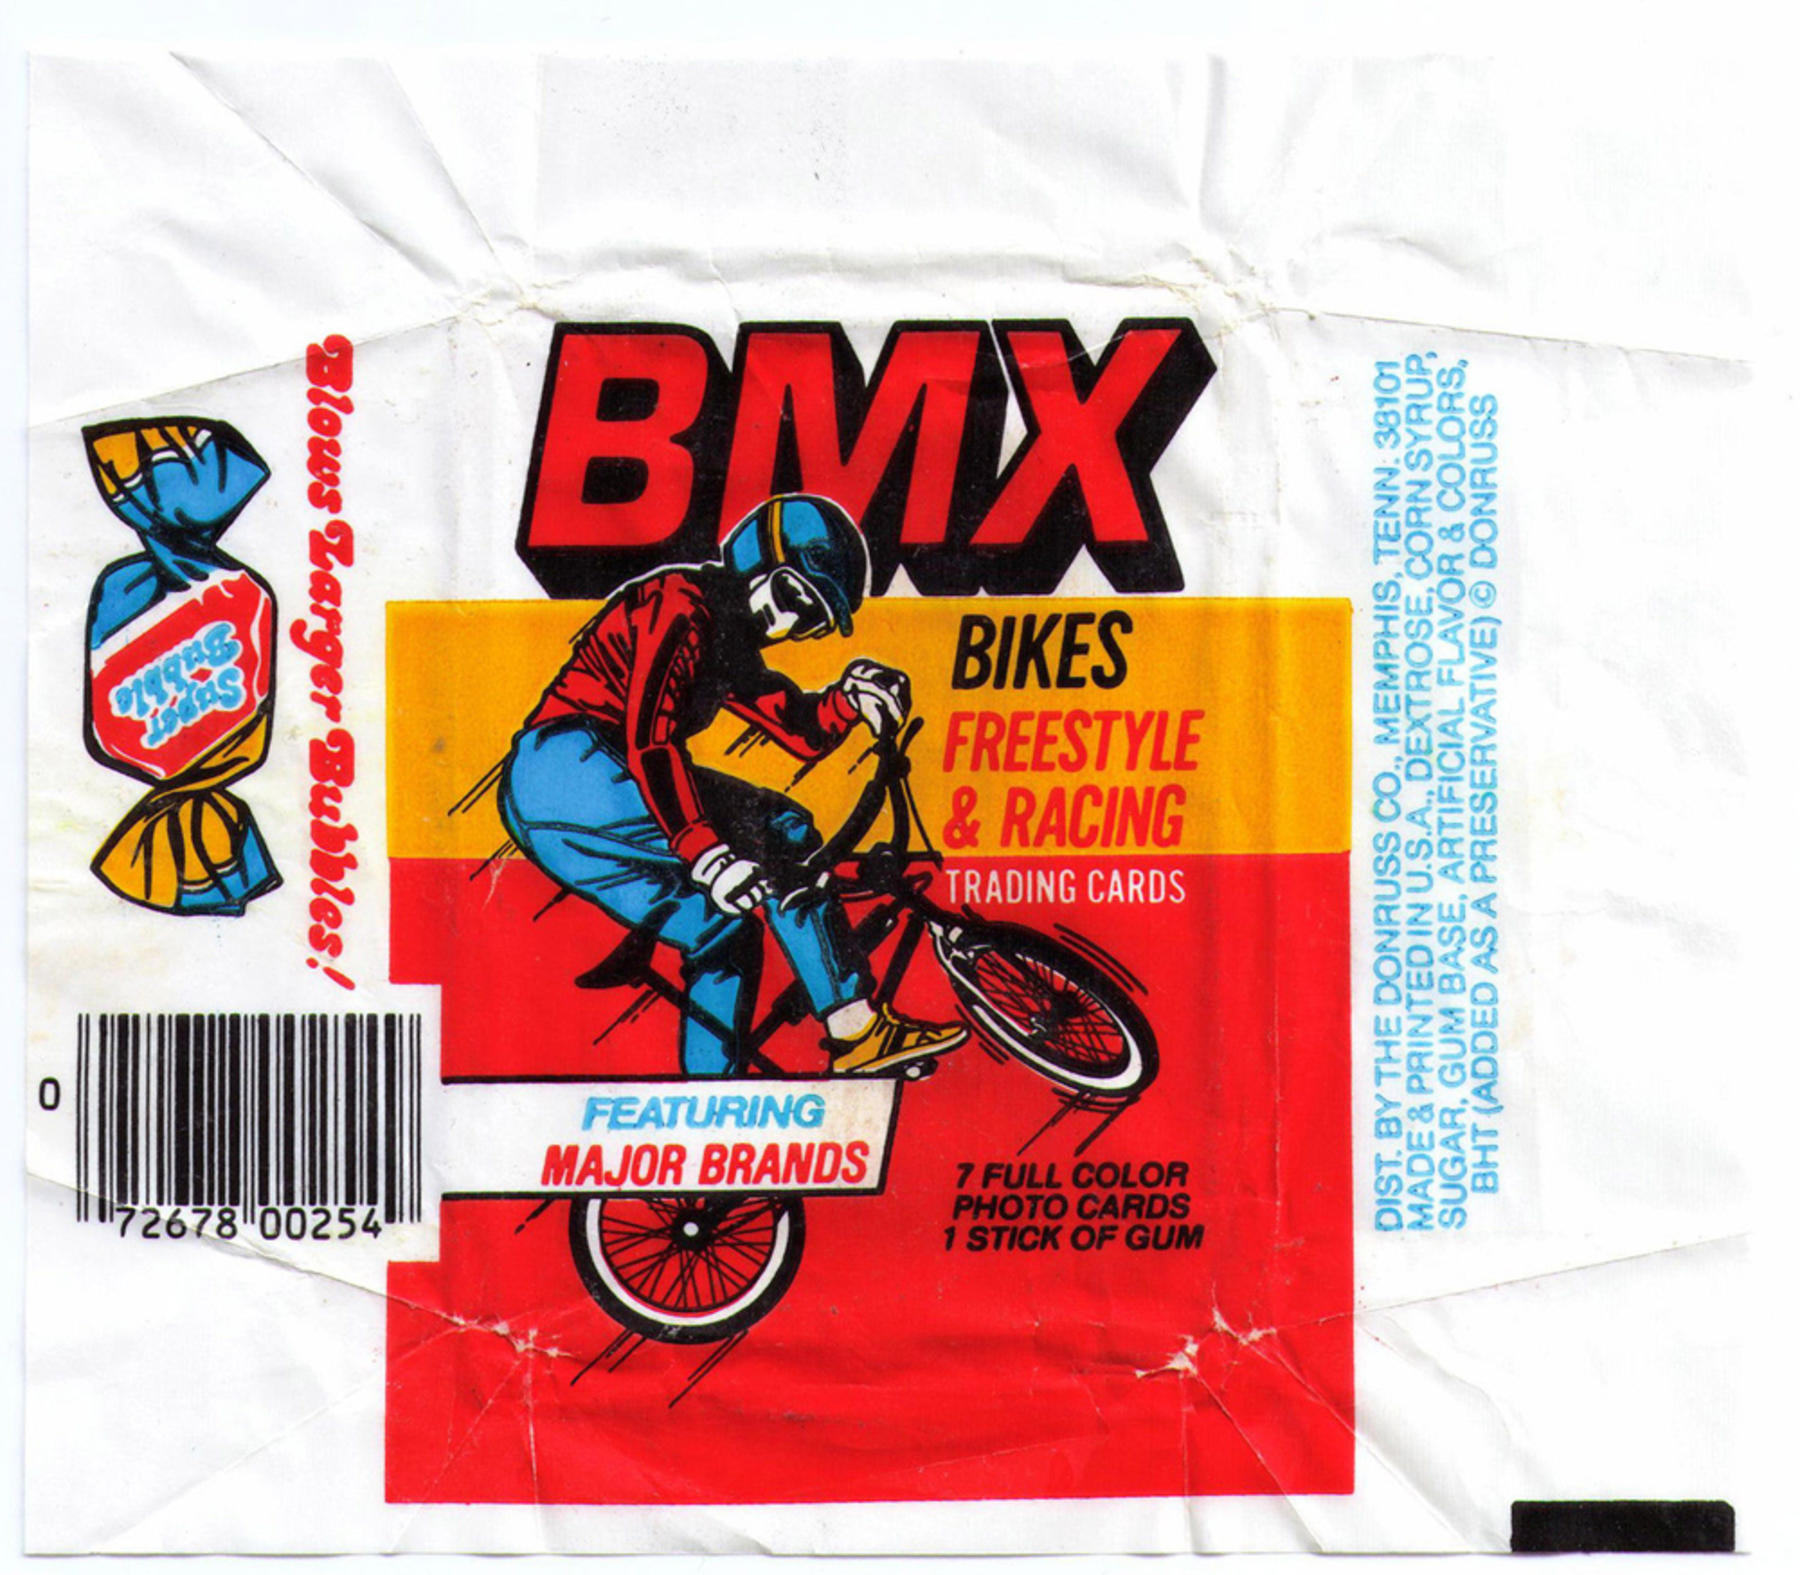 http://bmxmuseum.com/reference-images/1-a5a0dc5d586_blowup.jpg